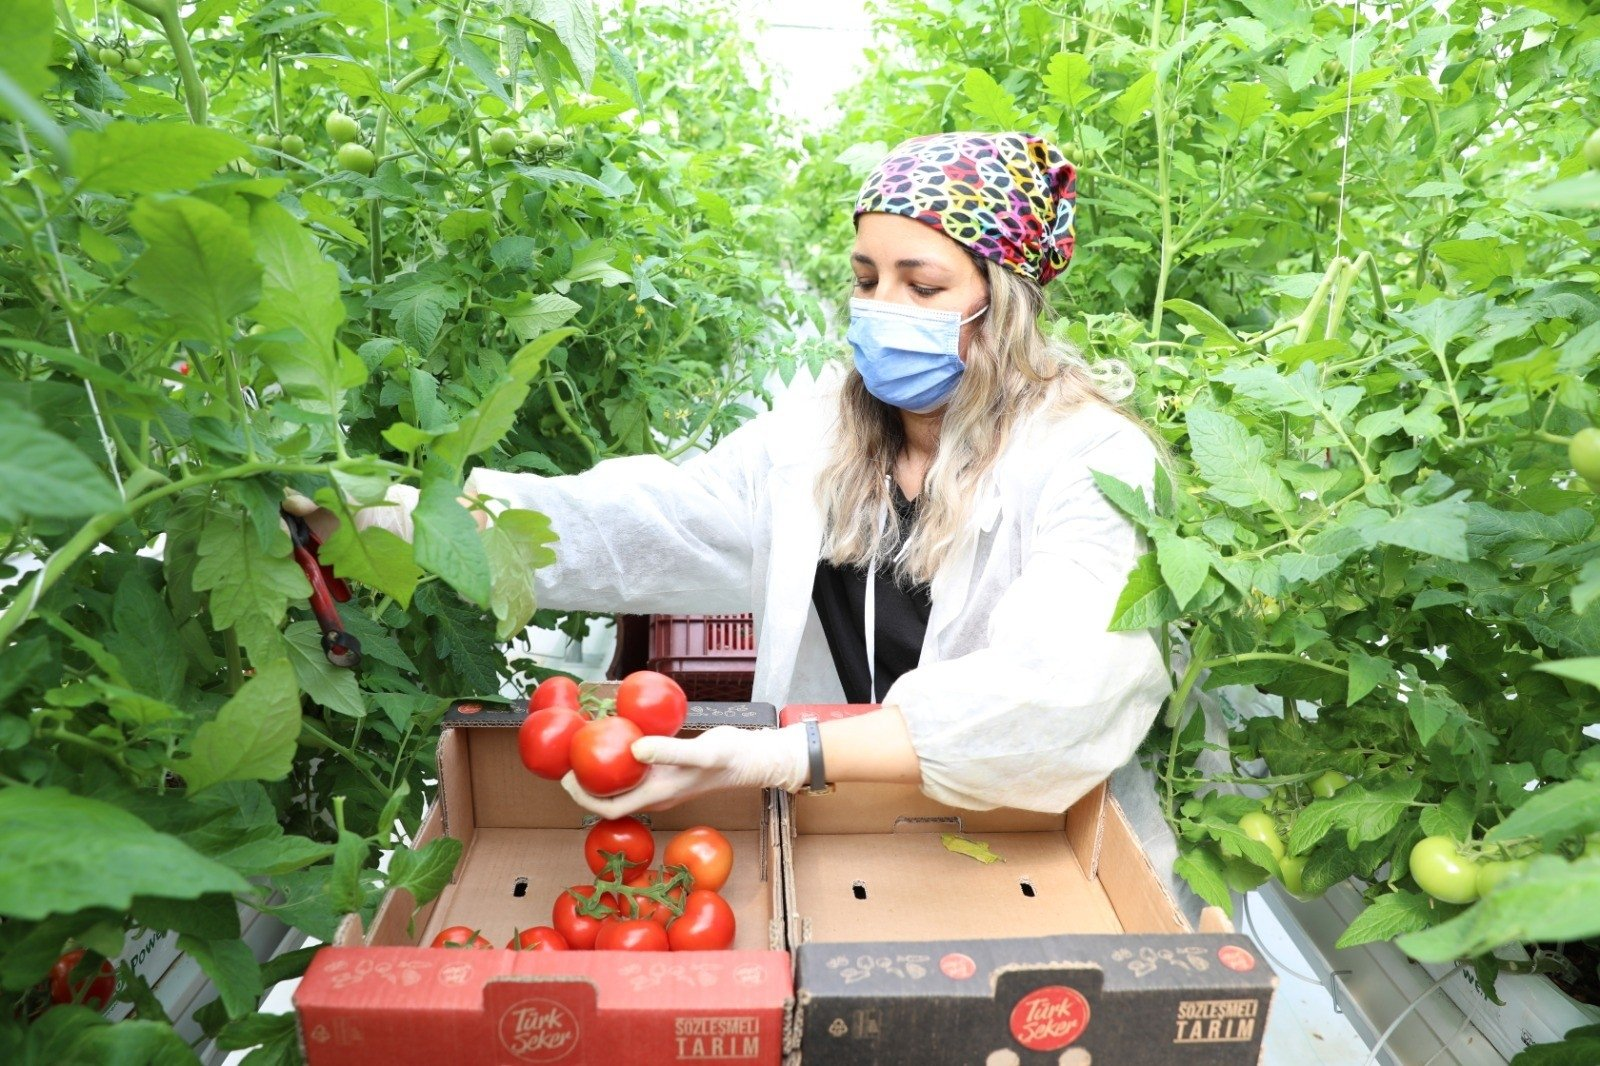 An employee collects tomatoes at a greenhouse in the capital Ankara, Turkey, April 3, 2021. (DHA Photo)